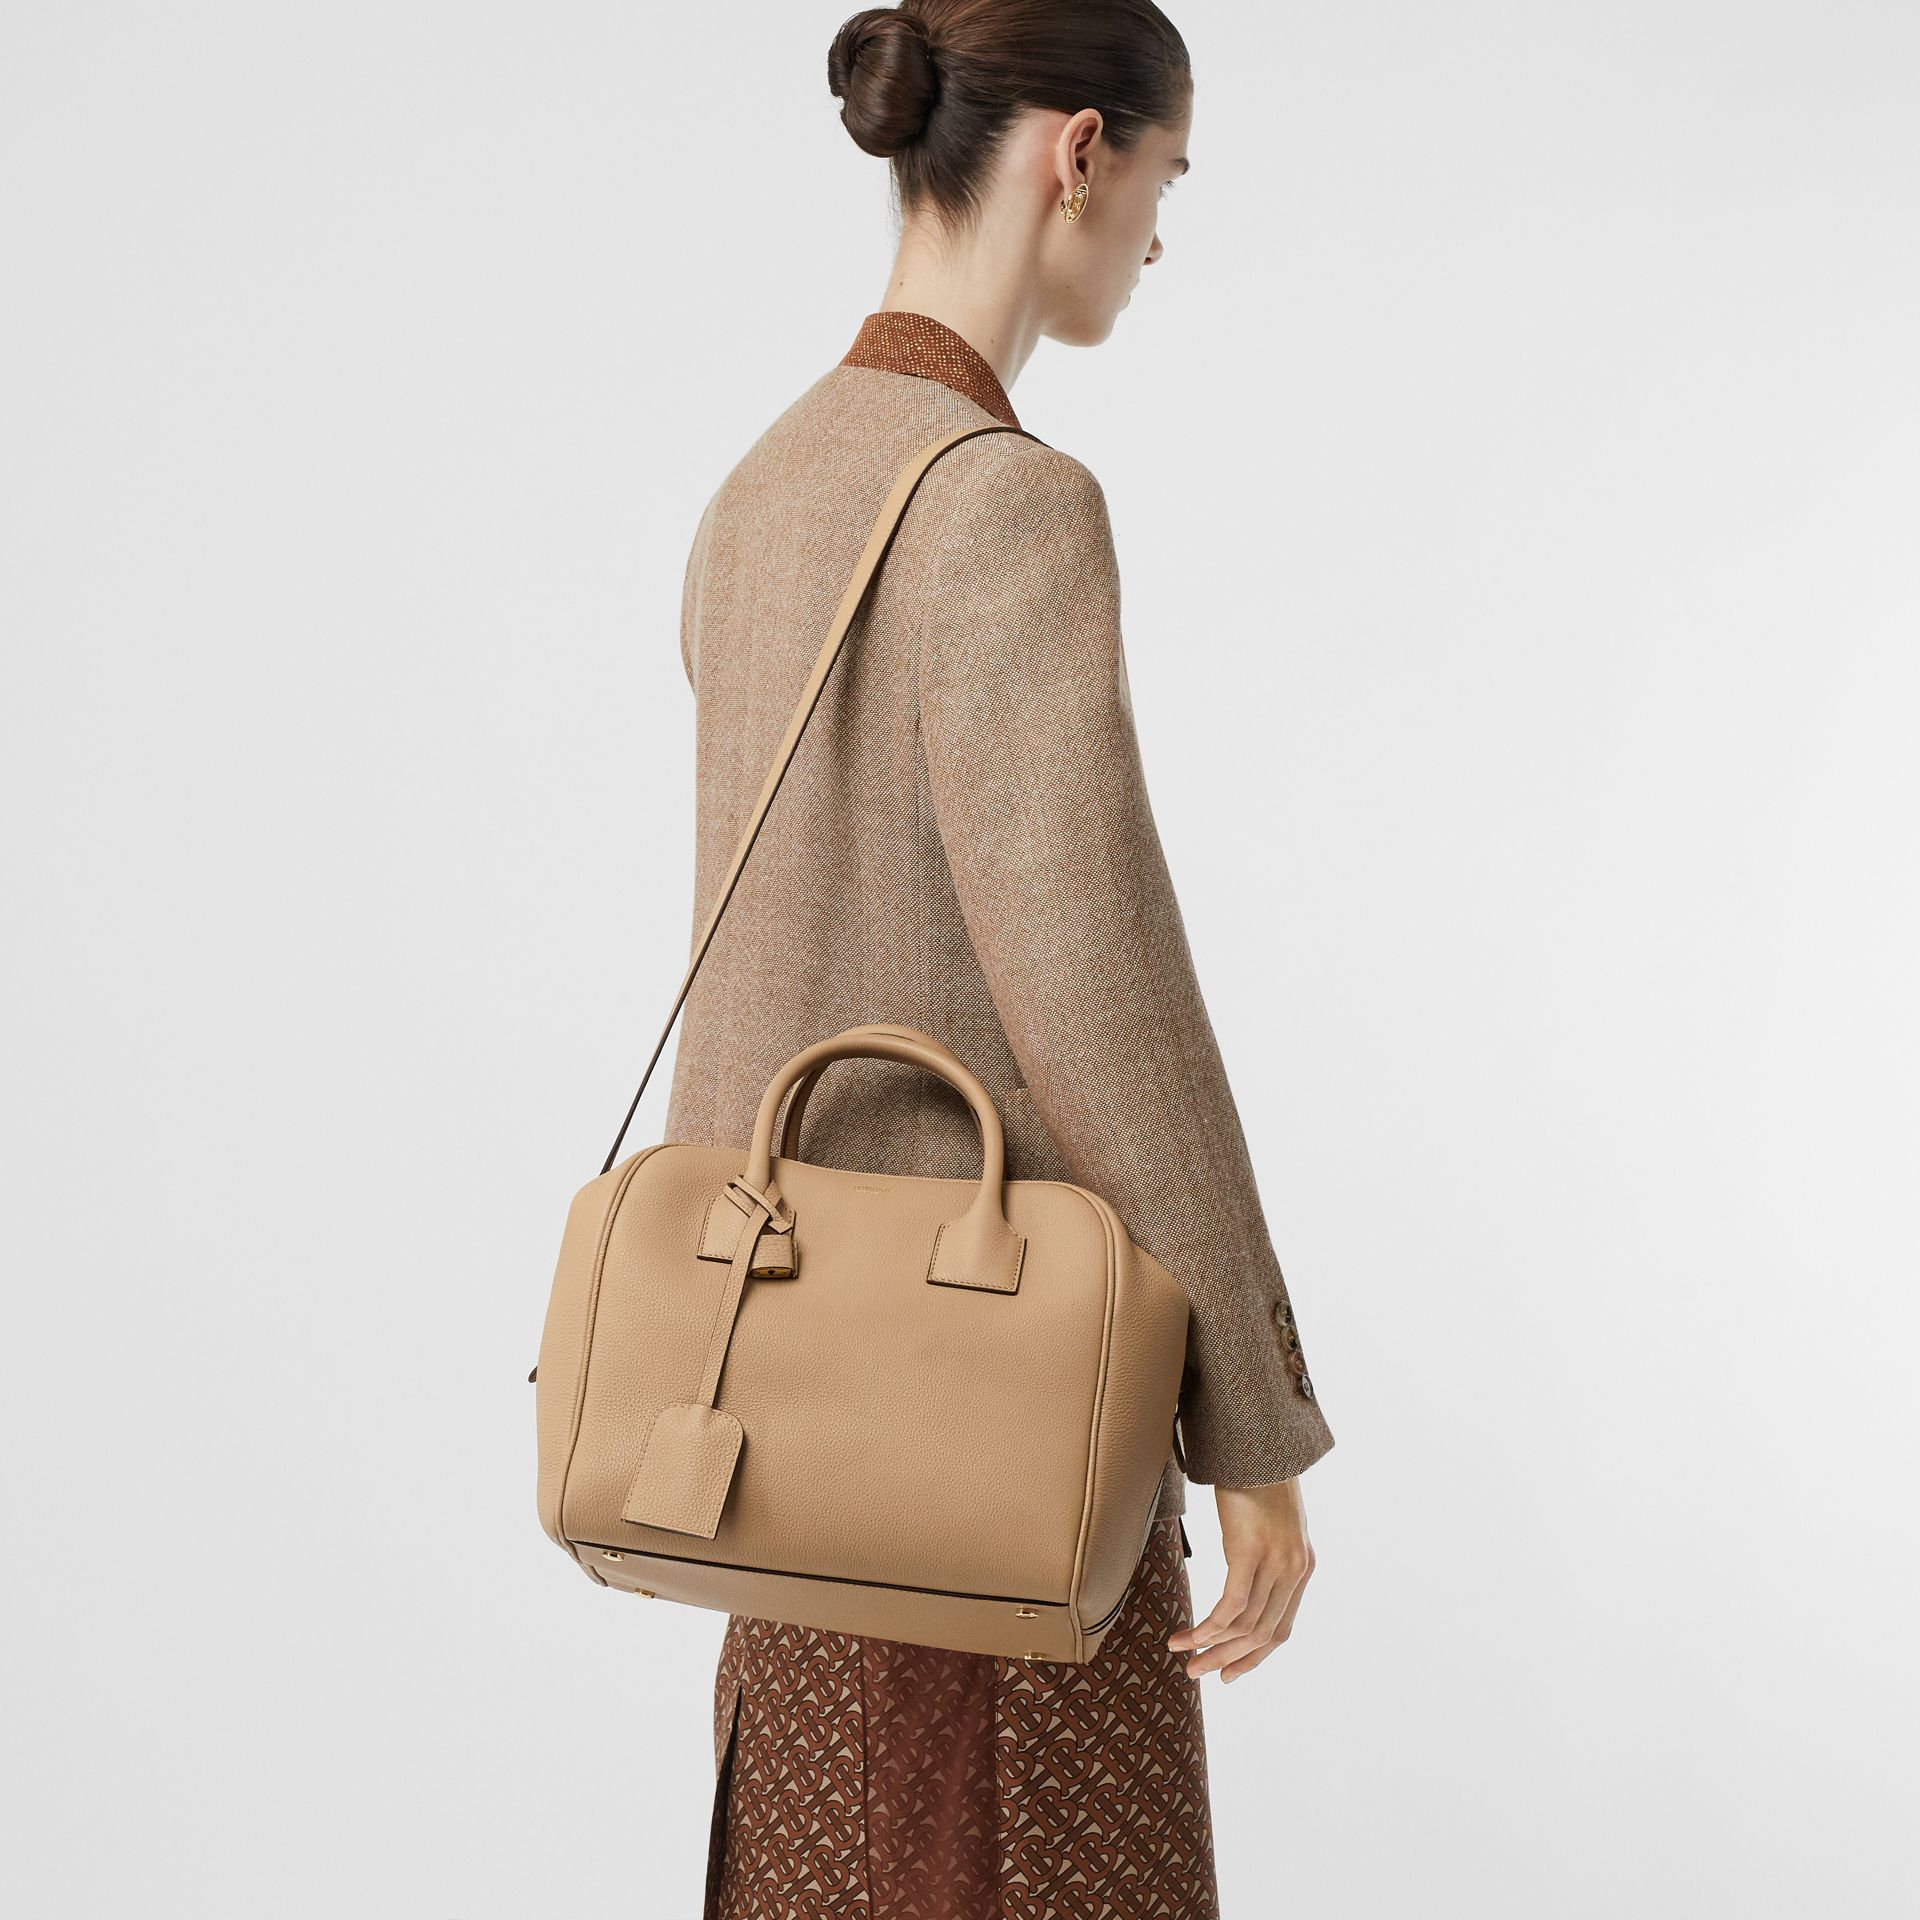 Medium Leather Cube Bag in Biscuit - Women | Burberry - gallery image 2